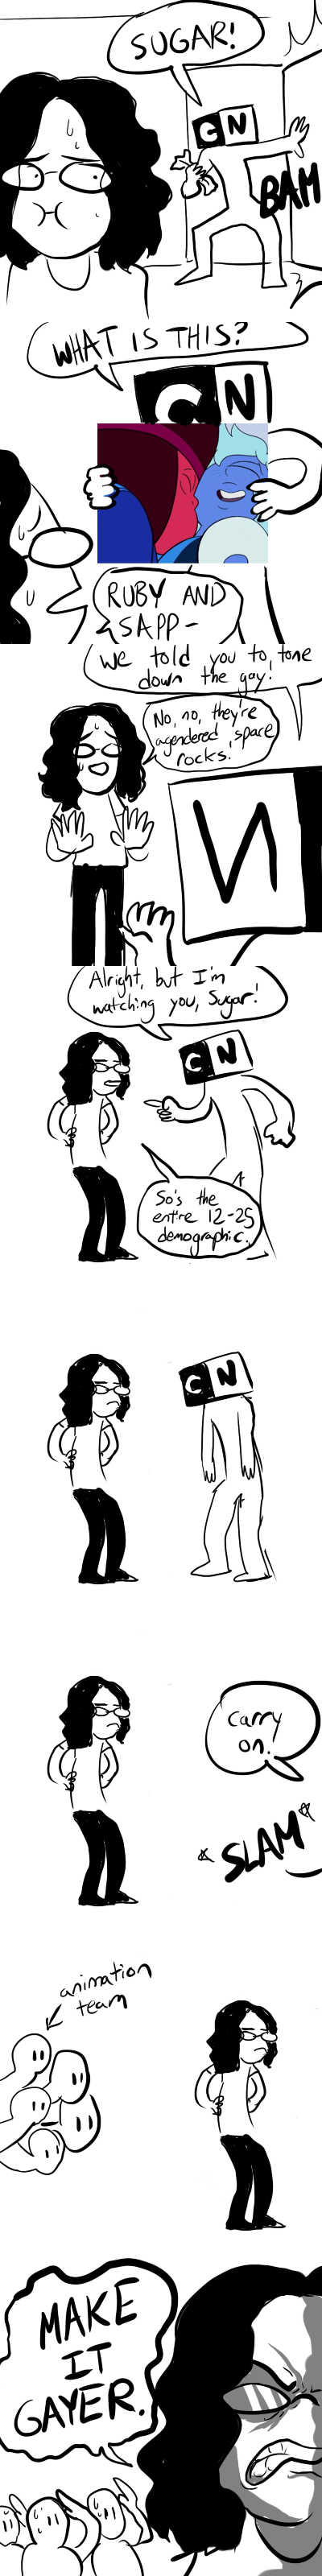 Every Day at the Steven Universe Office